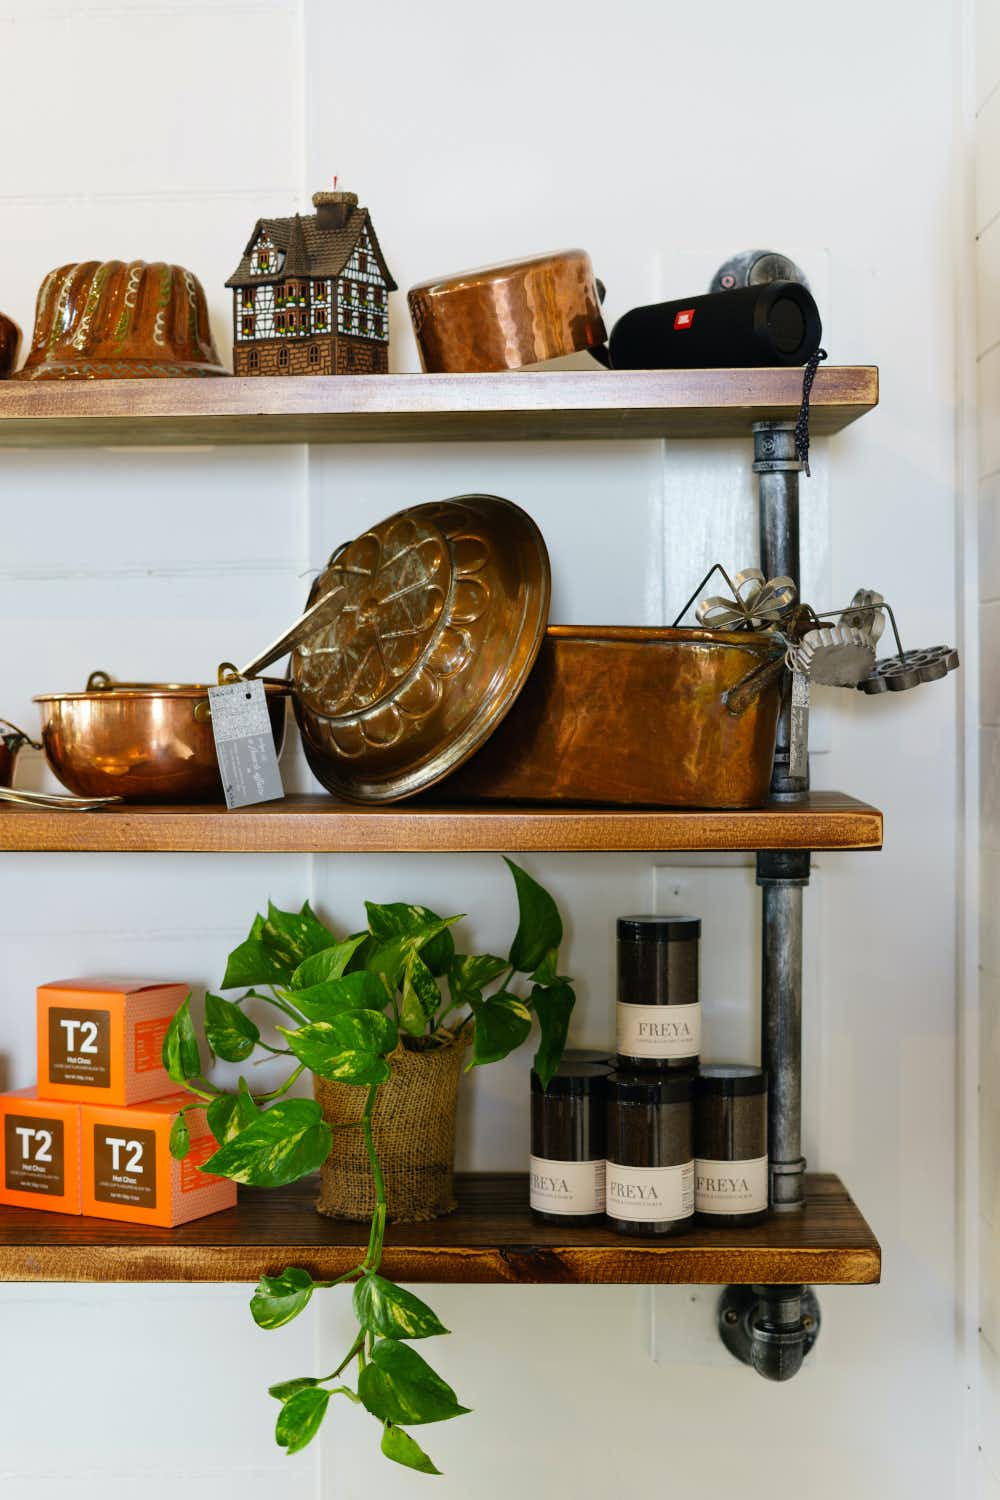 Freya Coffee And Coconut Scrub and cake moulds, Atelier Chocolat in Trentham, Victoria.